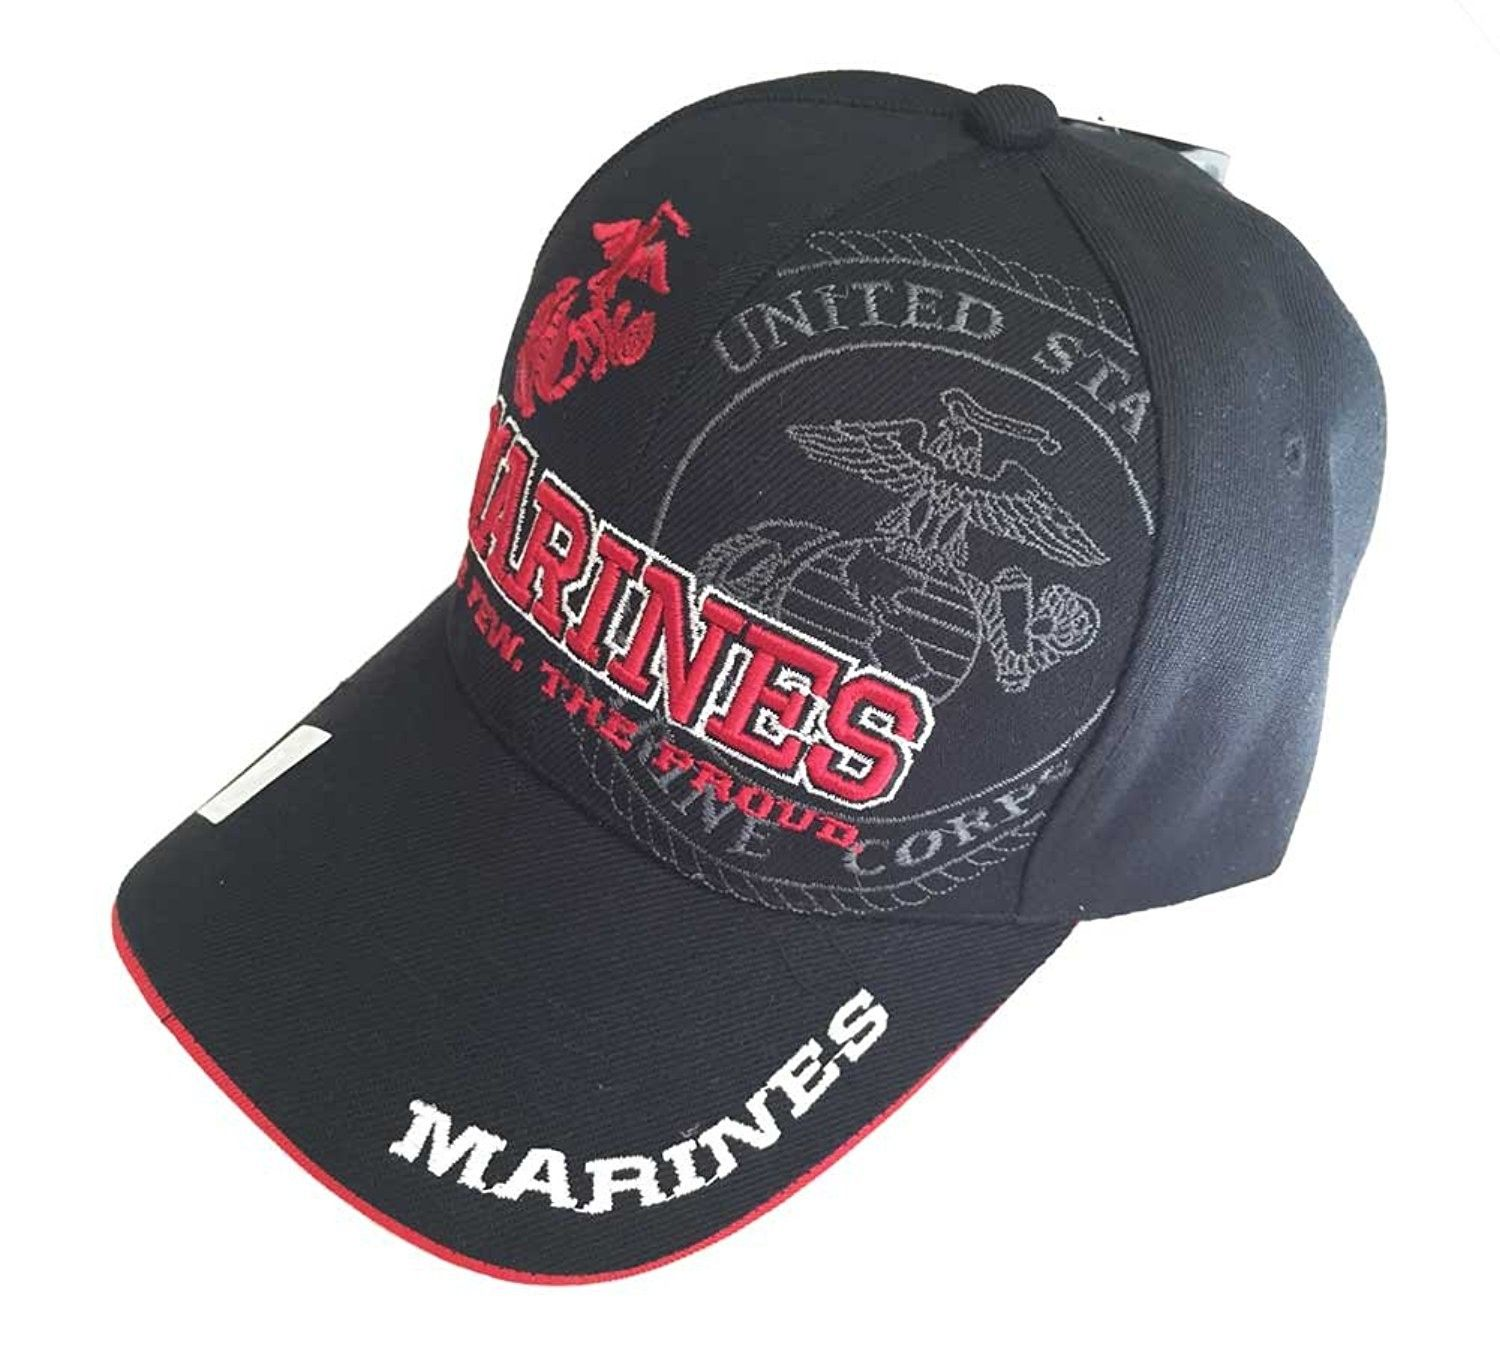 U.S. Military Marines Officially Licensed Cap Hat - Black ... 4a470e32d1a